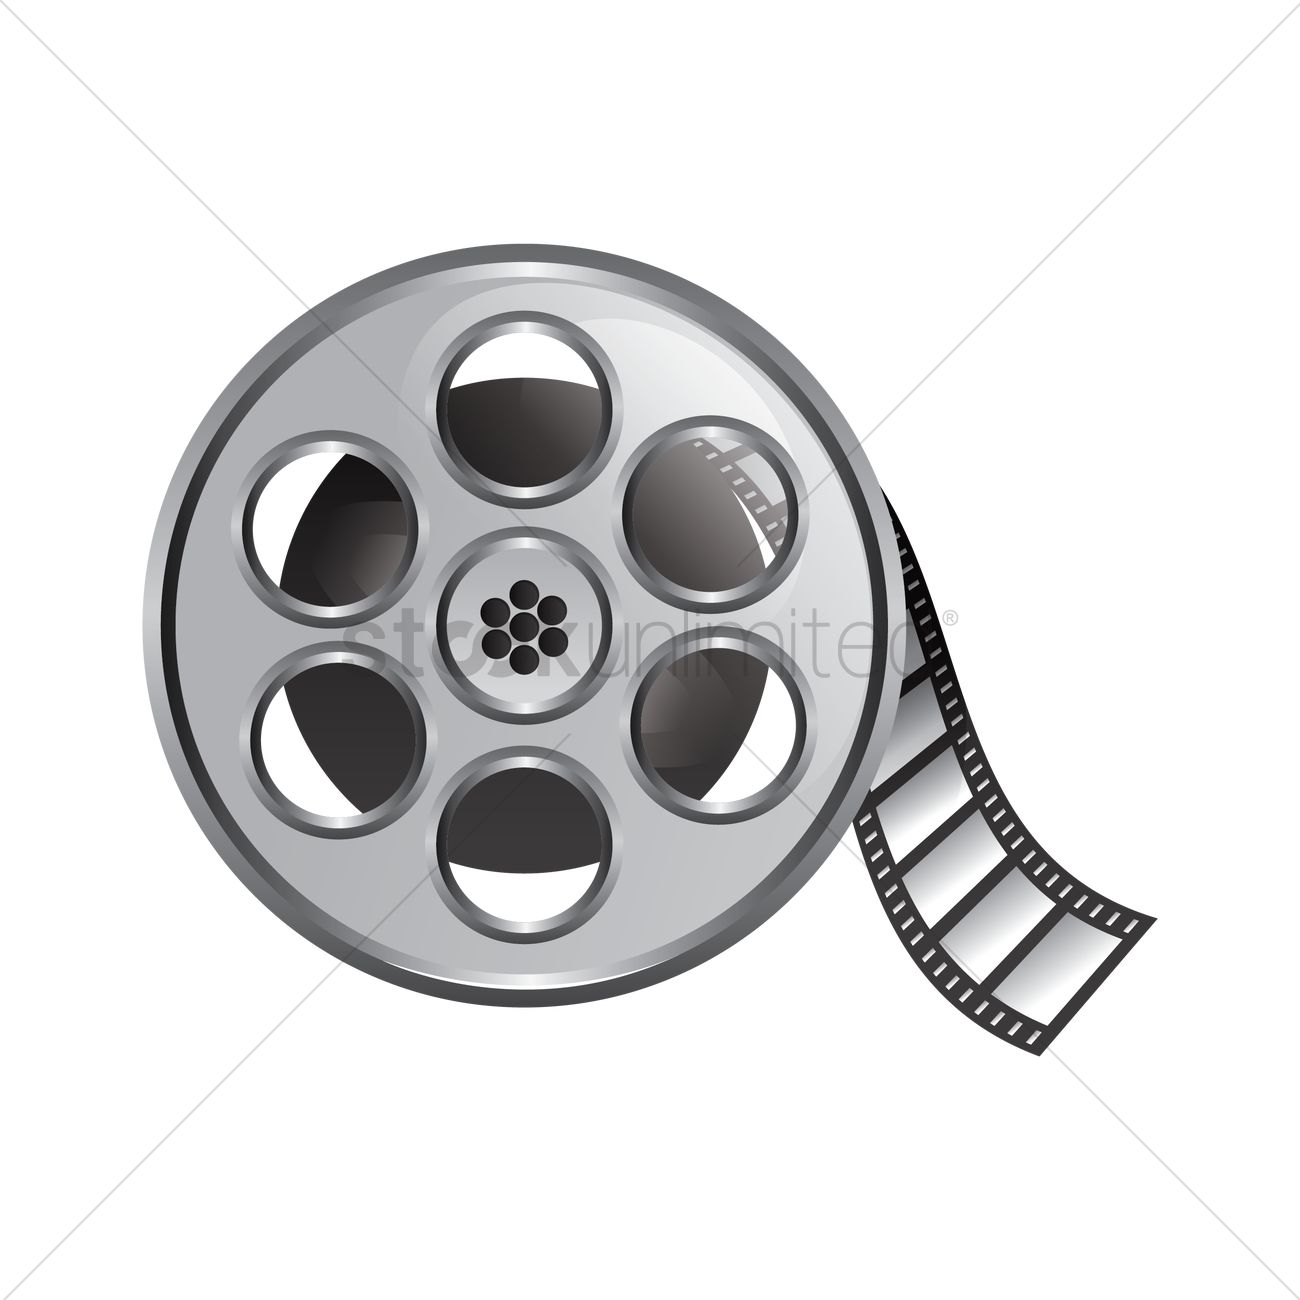 film reel vector image 1694654 stockunlimited rh stockunlimited com movie reel icon vector movie reel vector free download